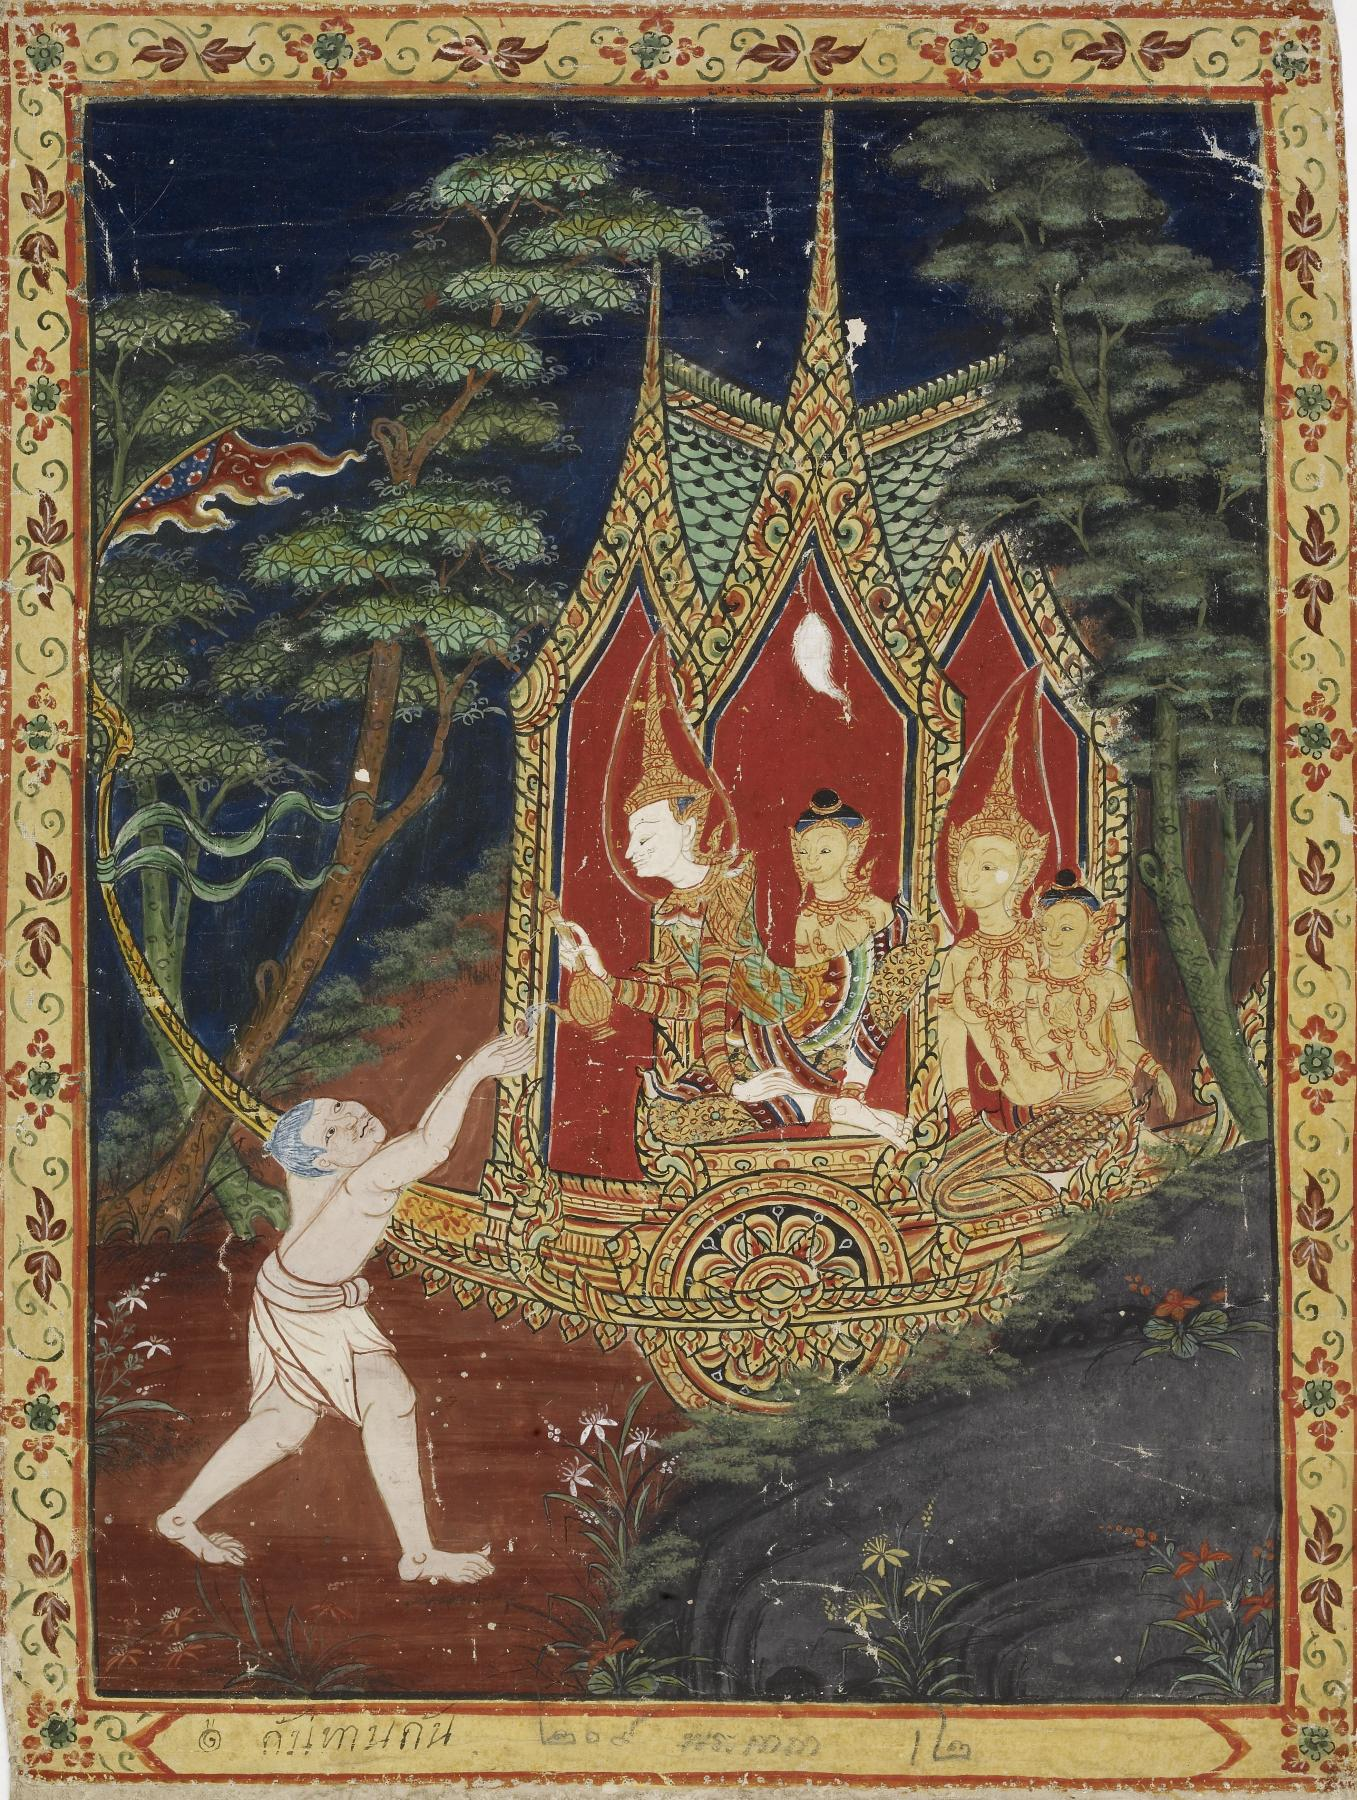 an analysis of buddha in the vessantara jataka The jataka sama story bodhisatta suvannasama the devoted son buddhda relates his past lives to his disciples once there were two brahamas from the brahma-loka (higher divine world) born as boy and girl in our human world.